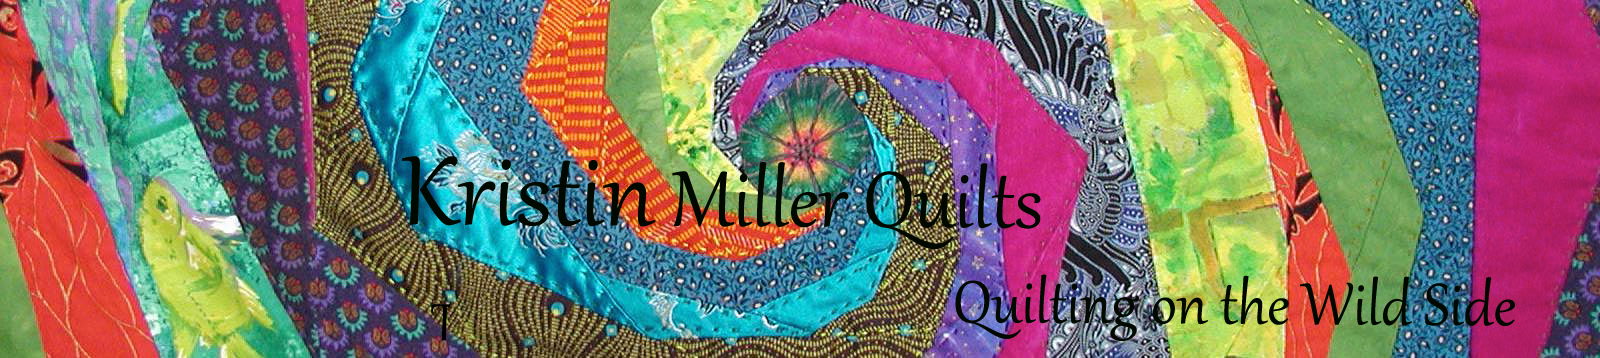 Kristin Miller – Quilts on the Wild Side